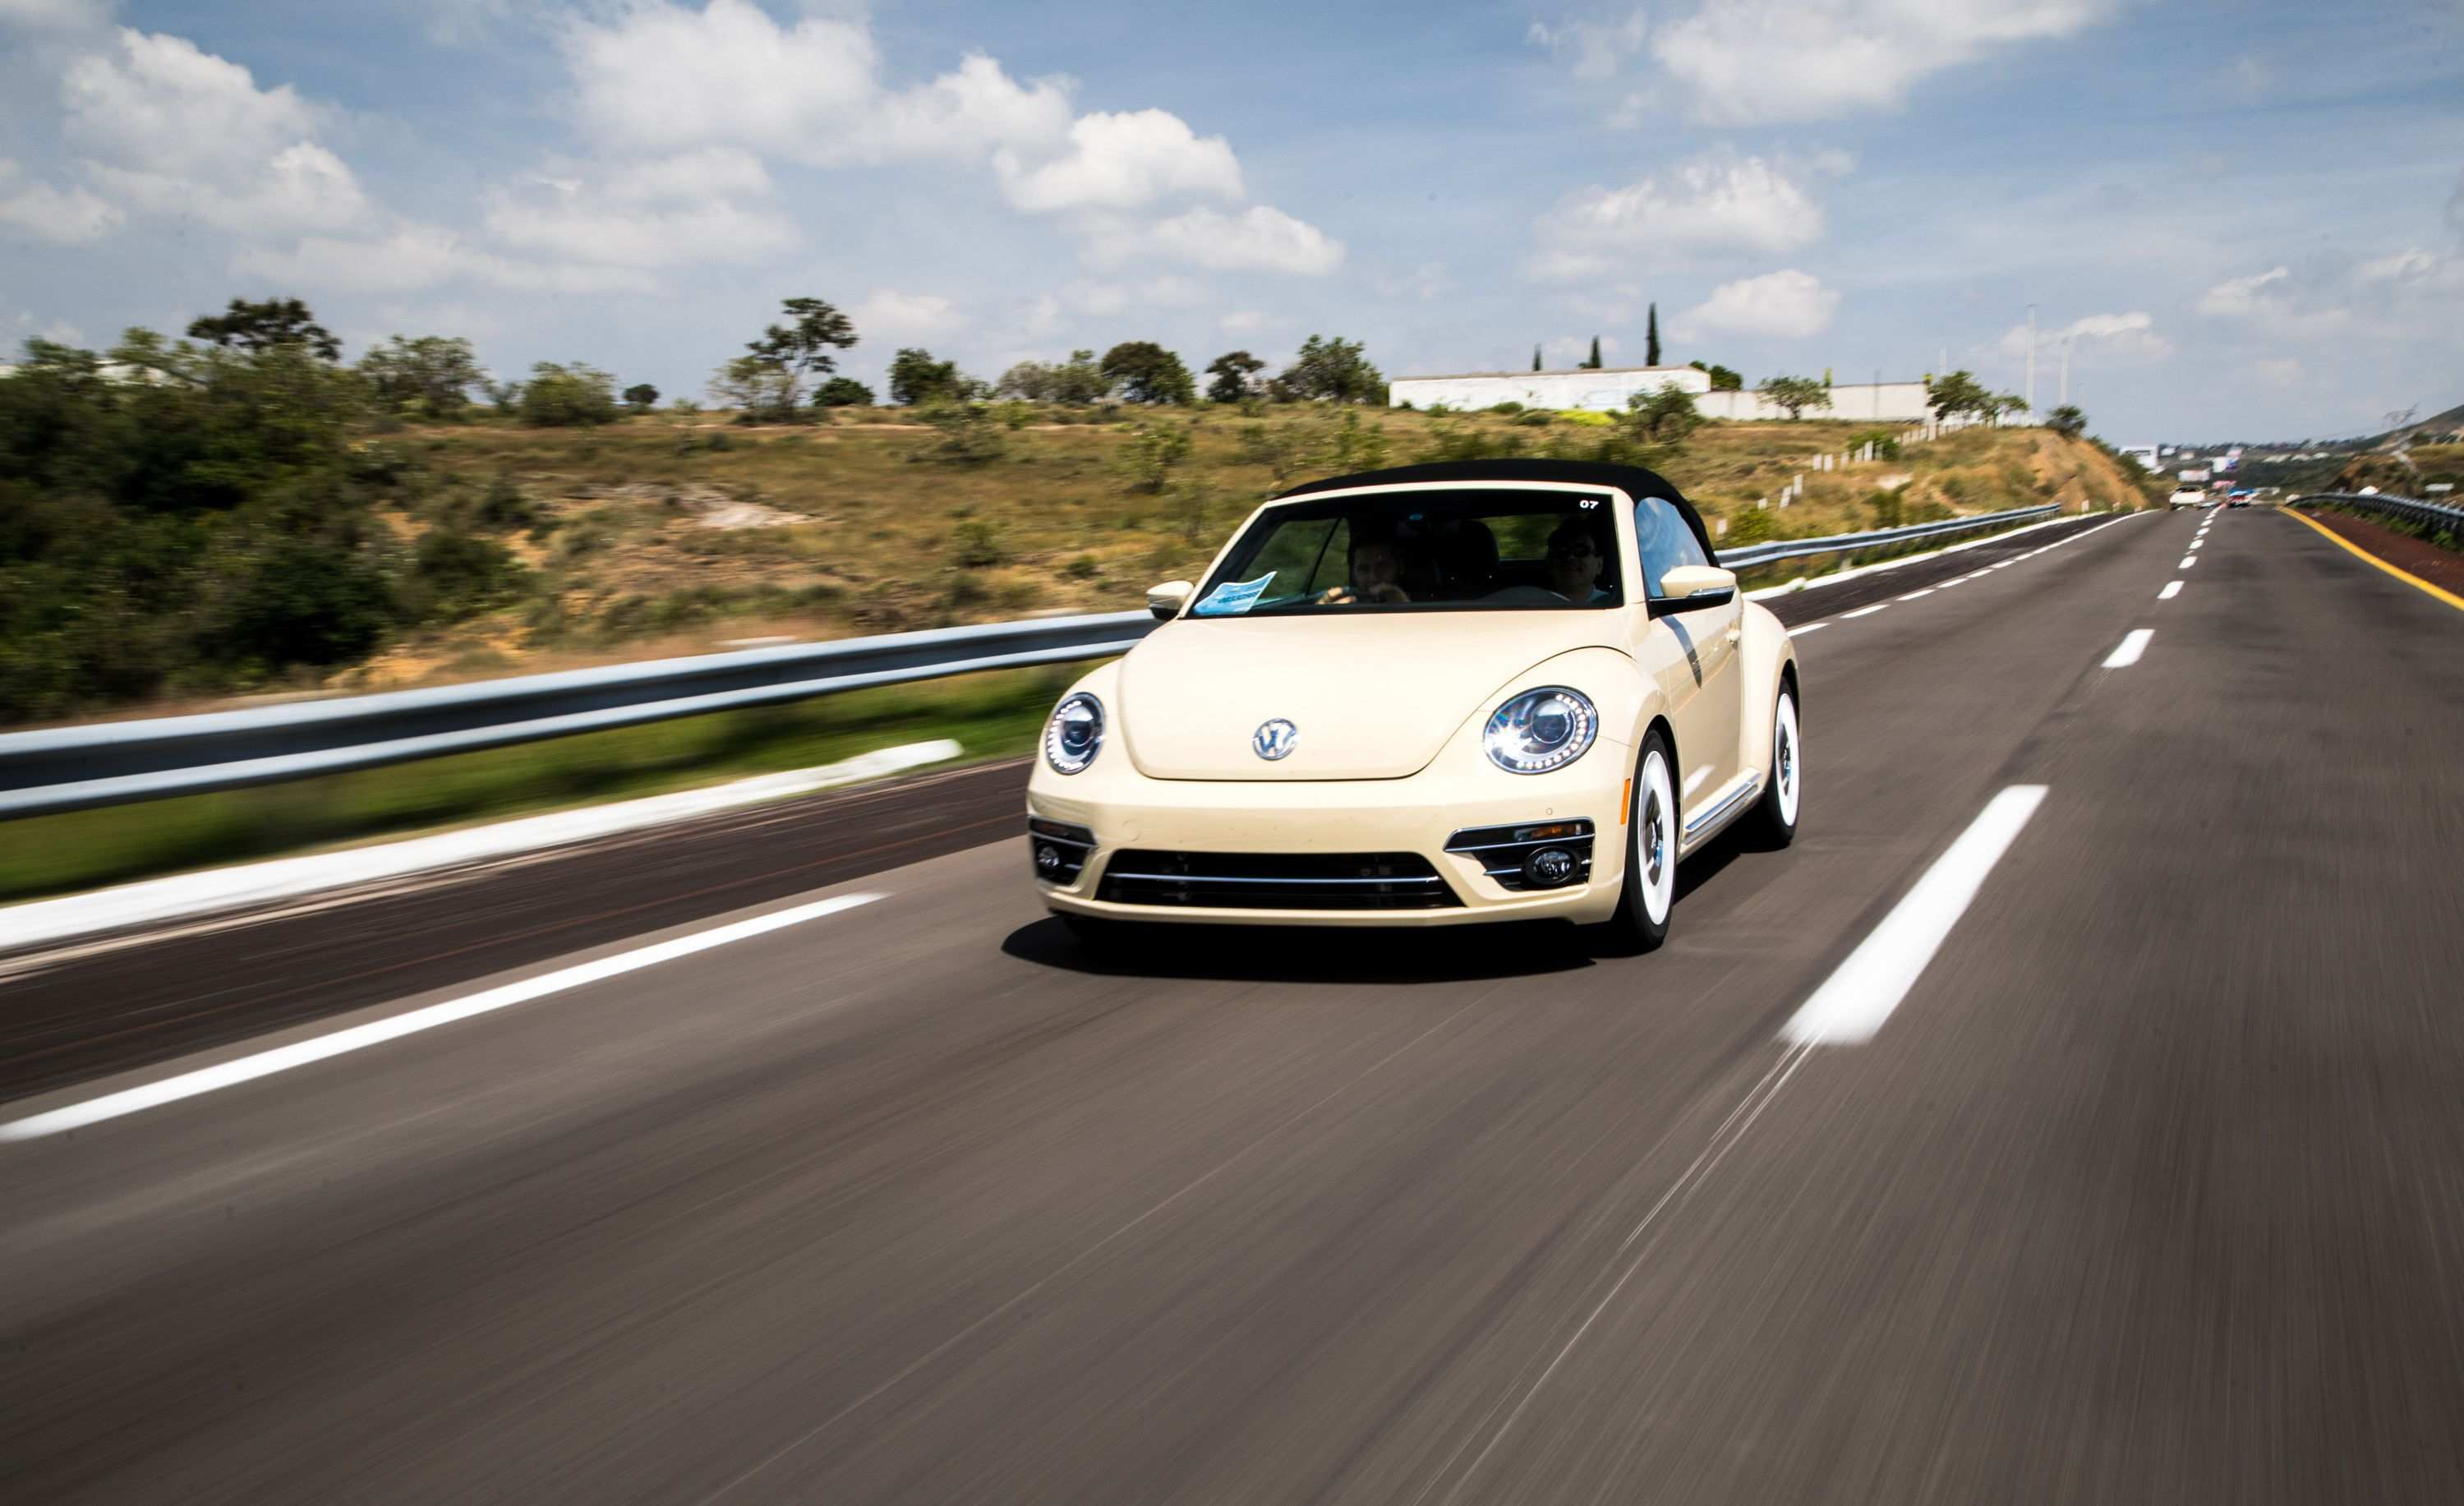 21 Gallery of 2019 Volkswagen Beetle Suv History with 2019 Volkswagen Beetle Suv